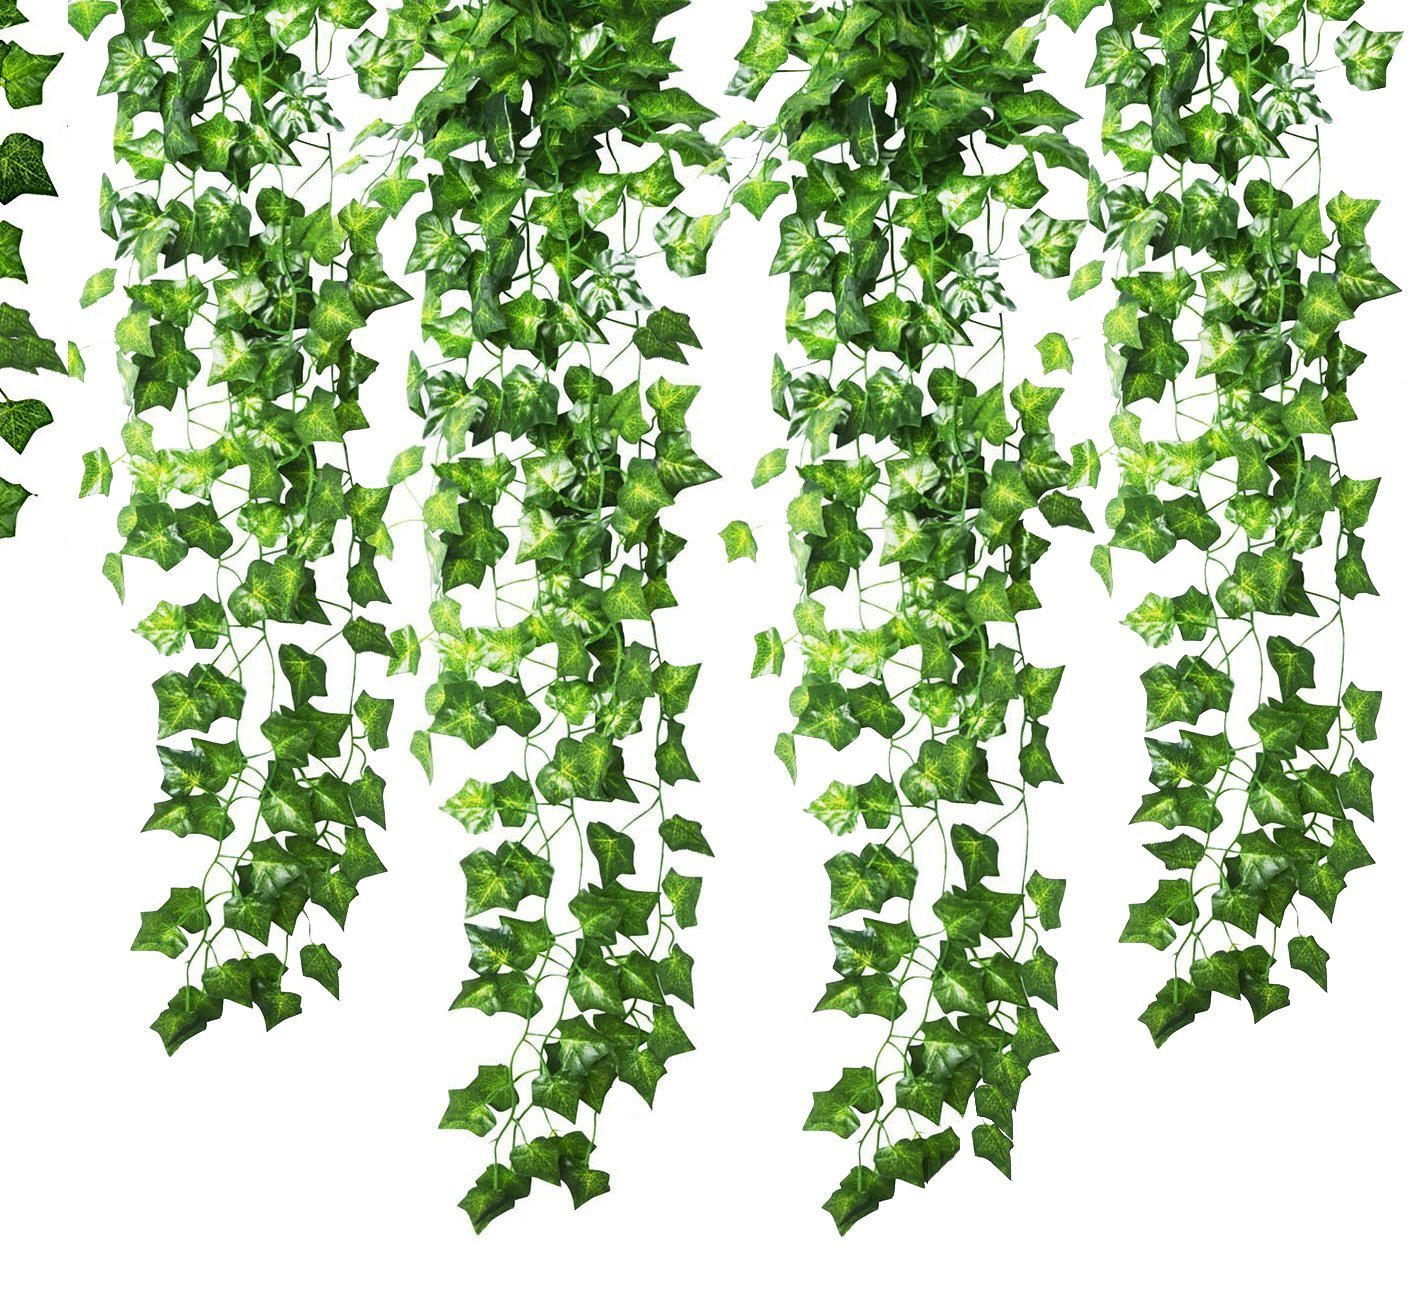 12 Strands (83 Feet) Artificial Ivy Garland Foliage Green Leaves Fake Hanging Vine Plant for Wedding Party Garden Wall Decoration Xutong